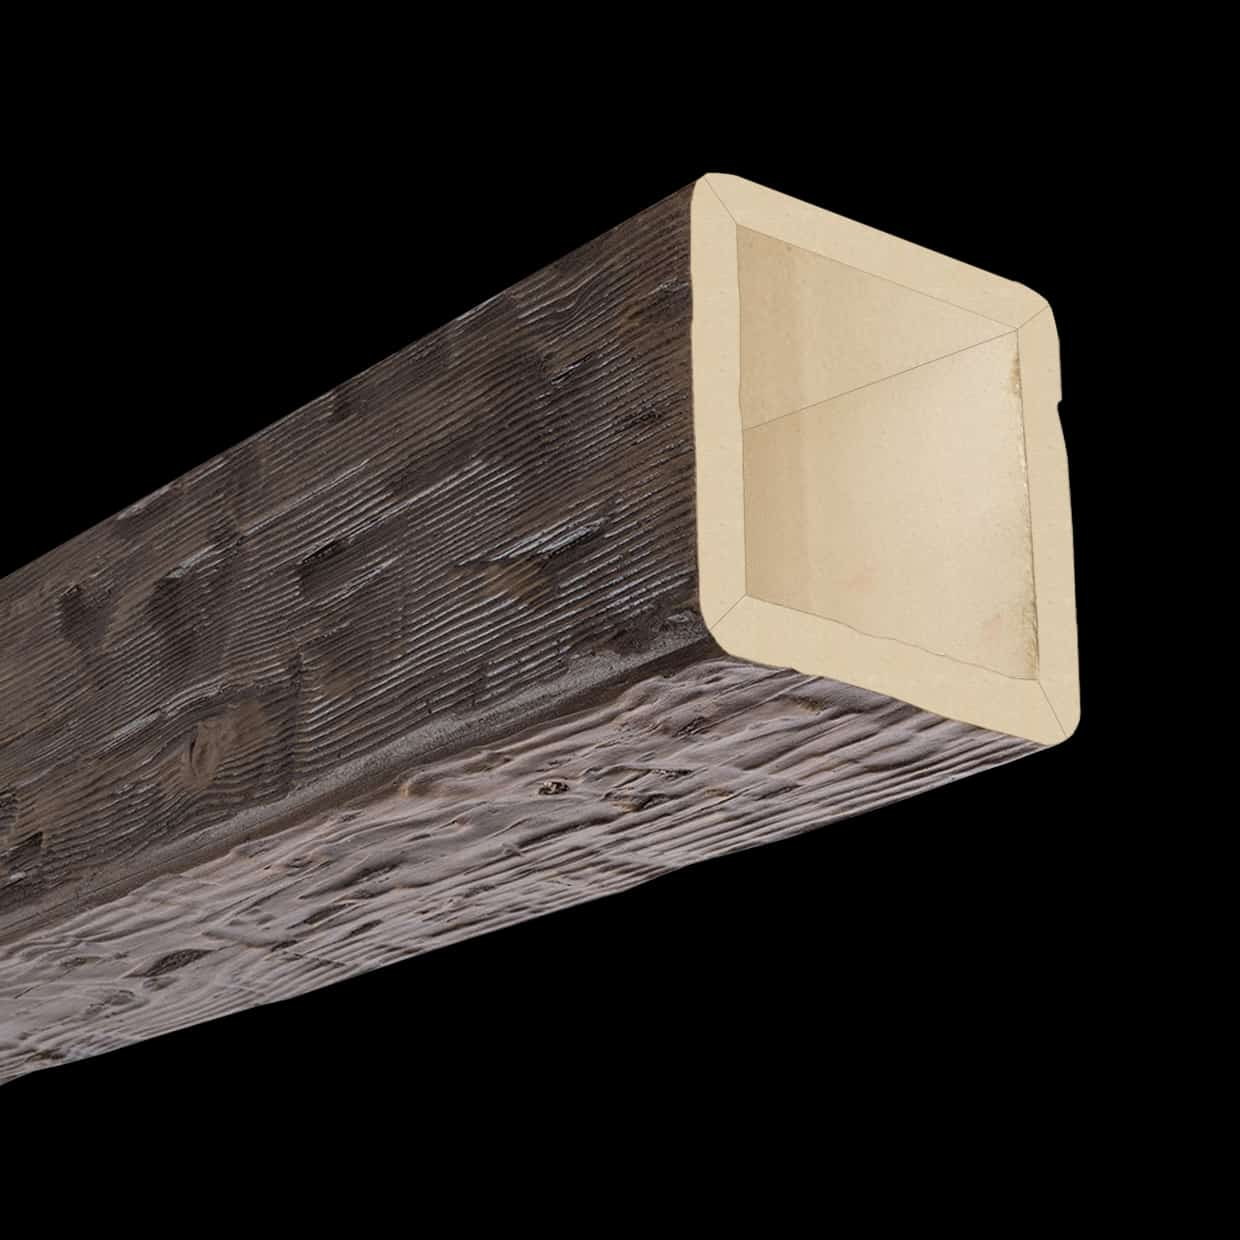 Faux Wood Ceiling Beam 4SBA - Hand Hewn - Dark Walnut